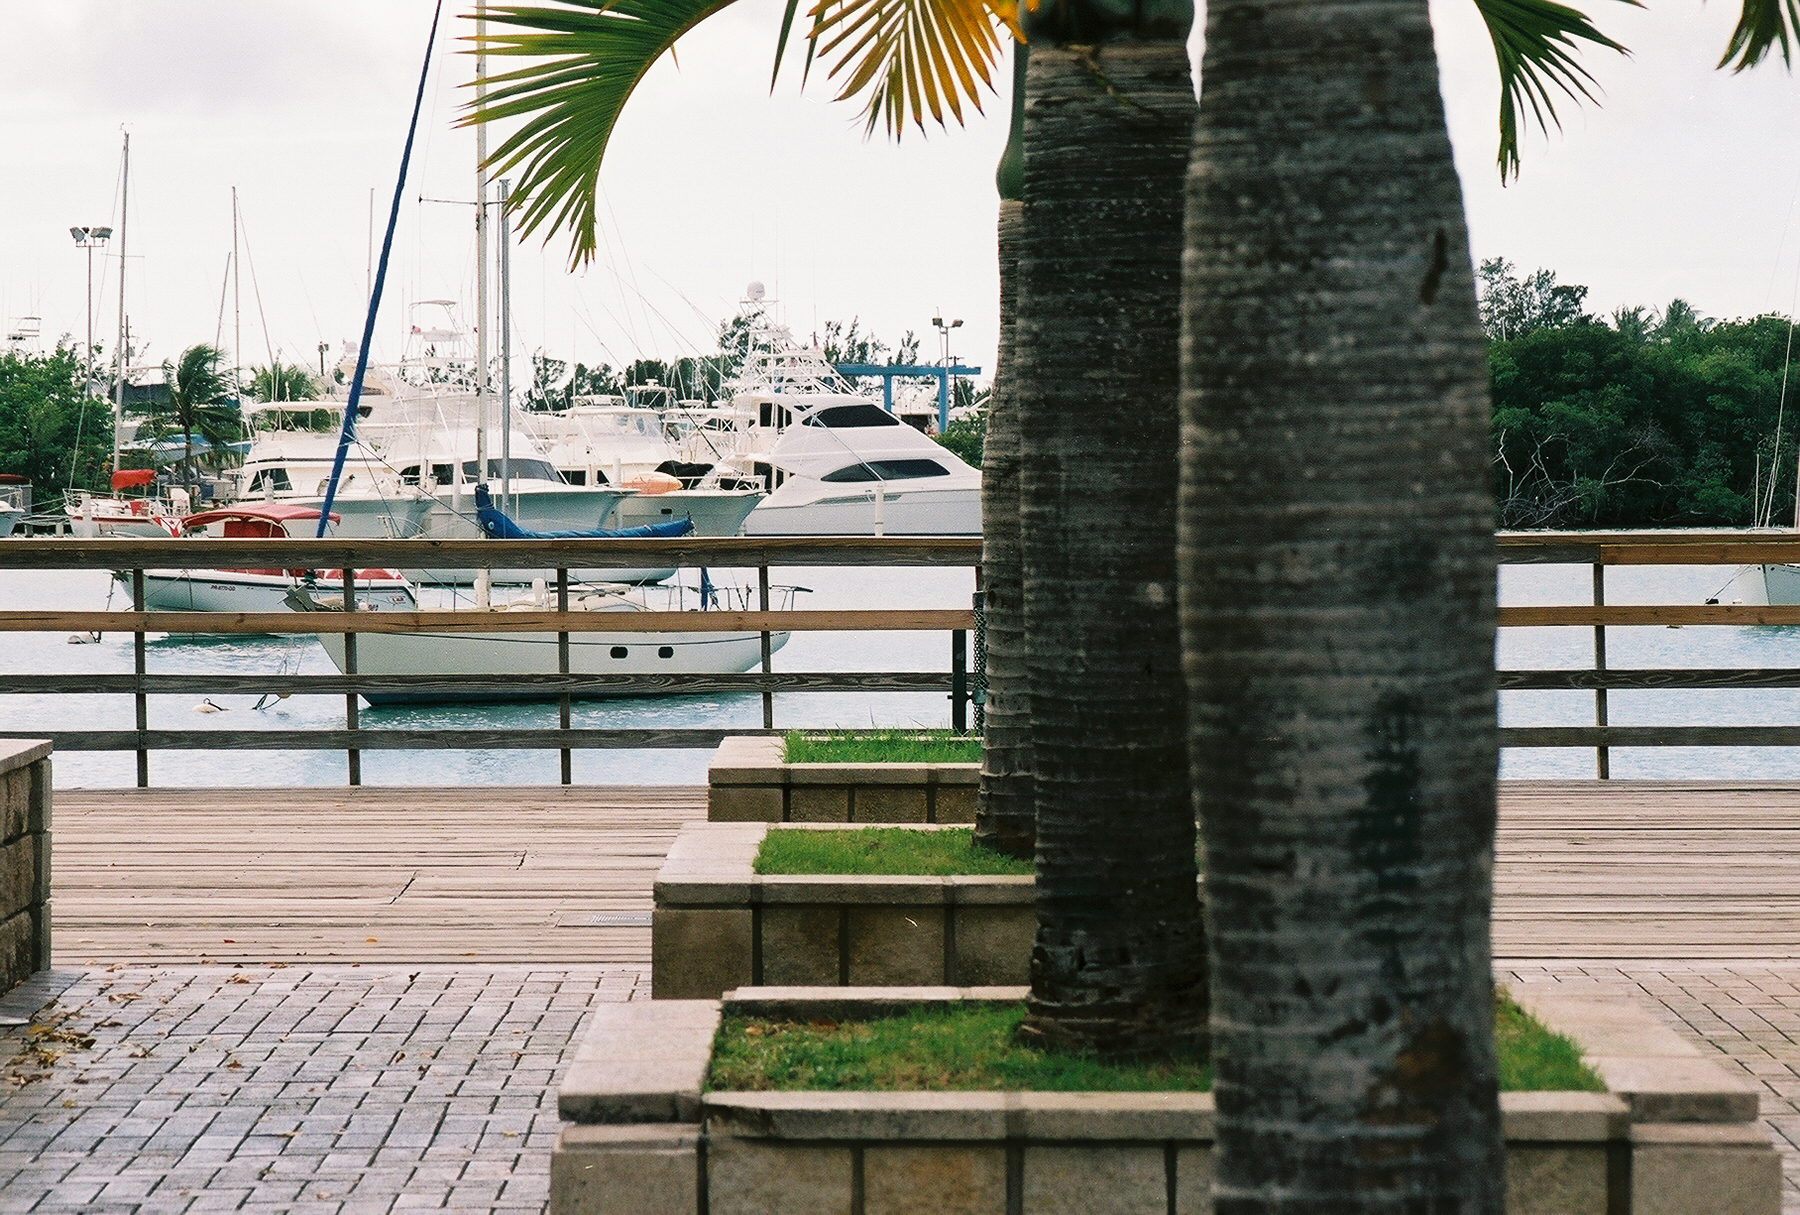 Walkway by the sea, Boats, Ocean, Palms, Trees, HQ Photo